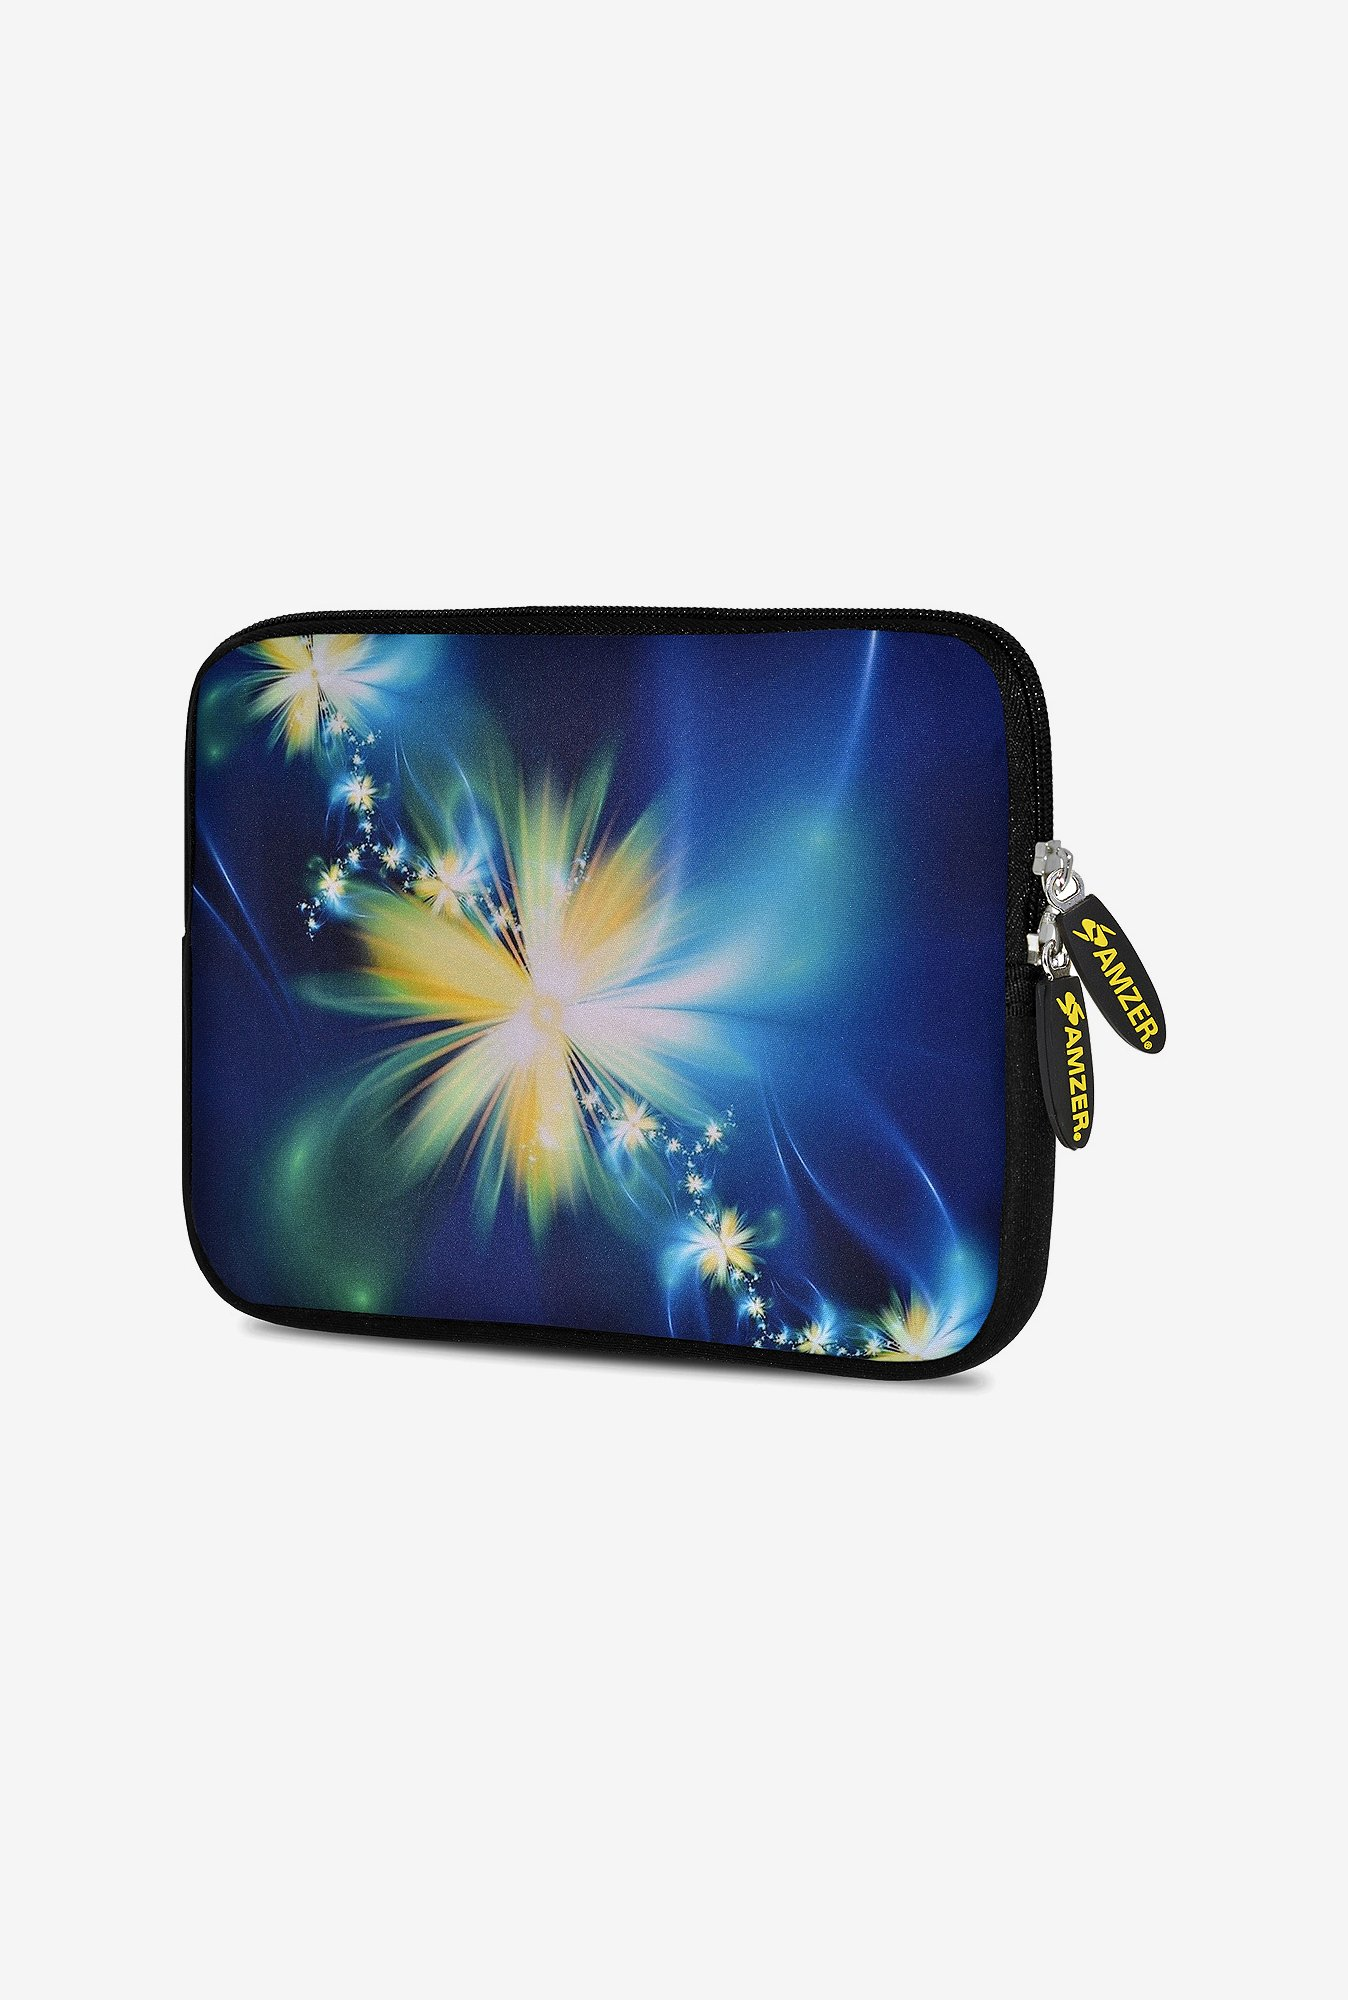 Amzer 7.75 Inch Neoprene Sleeve - Starlight Galaxy